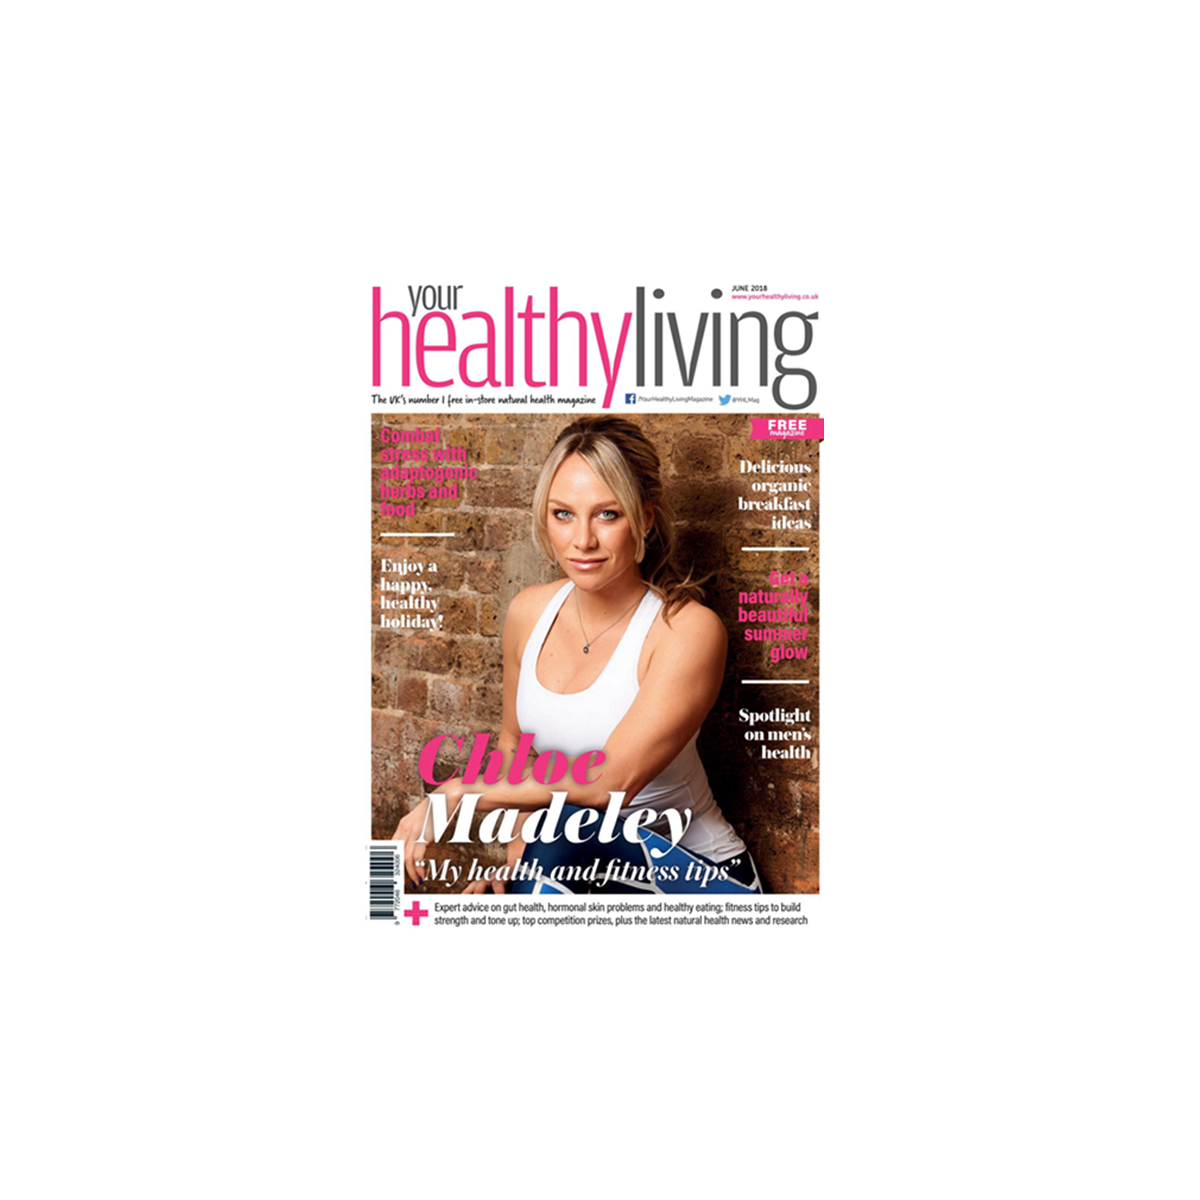 an image of the cover of healthy living magazine